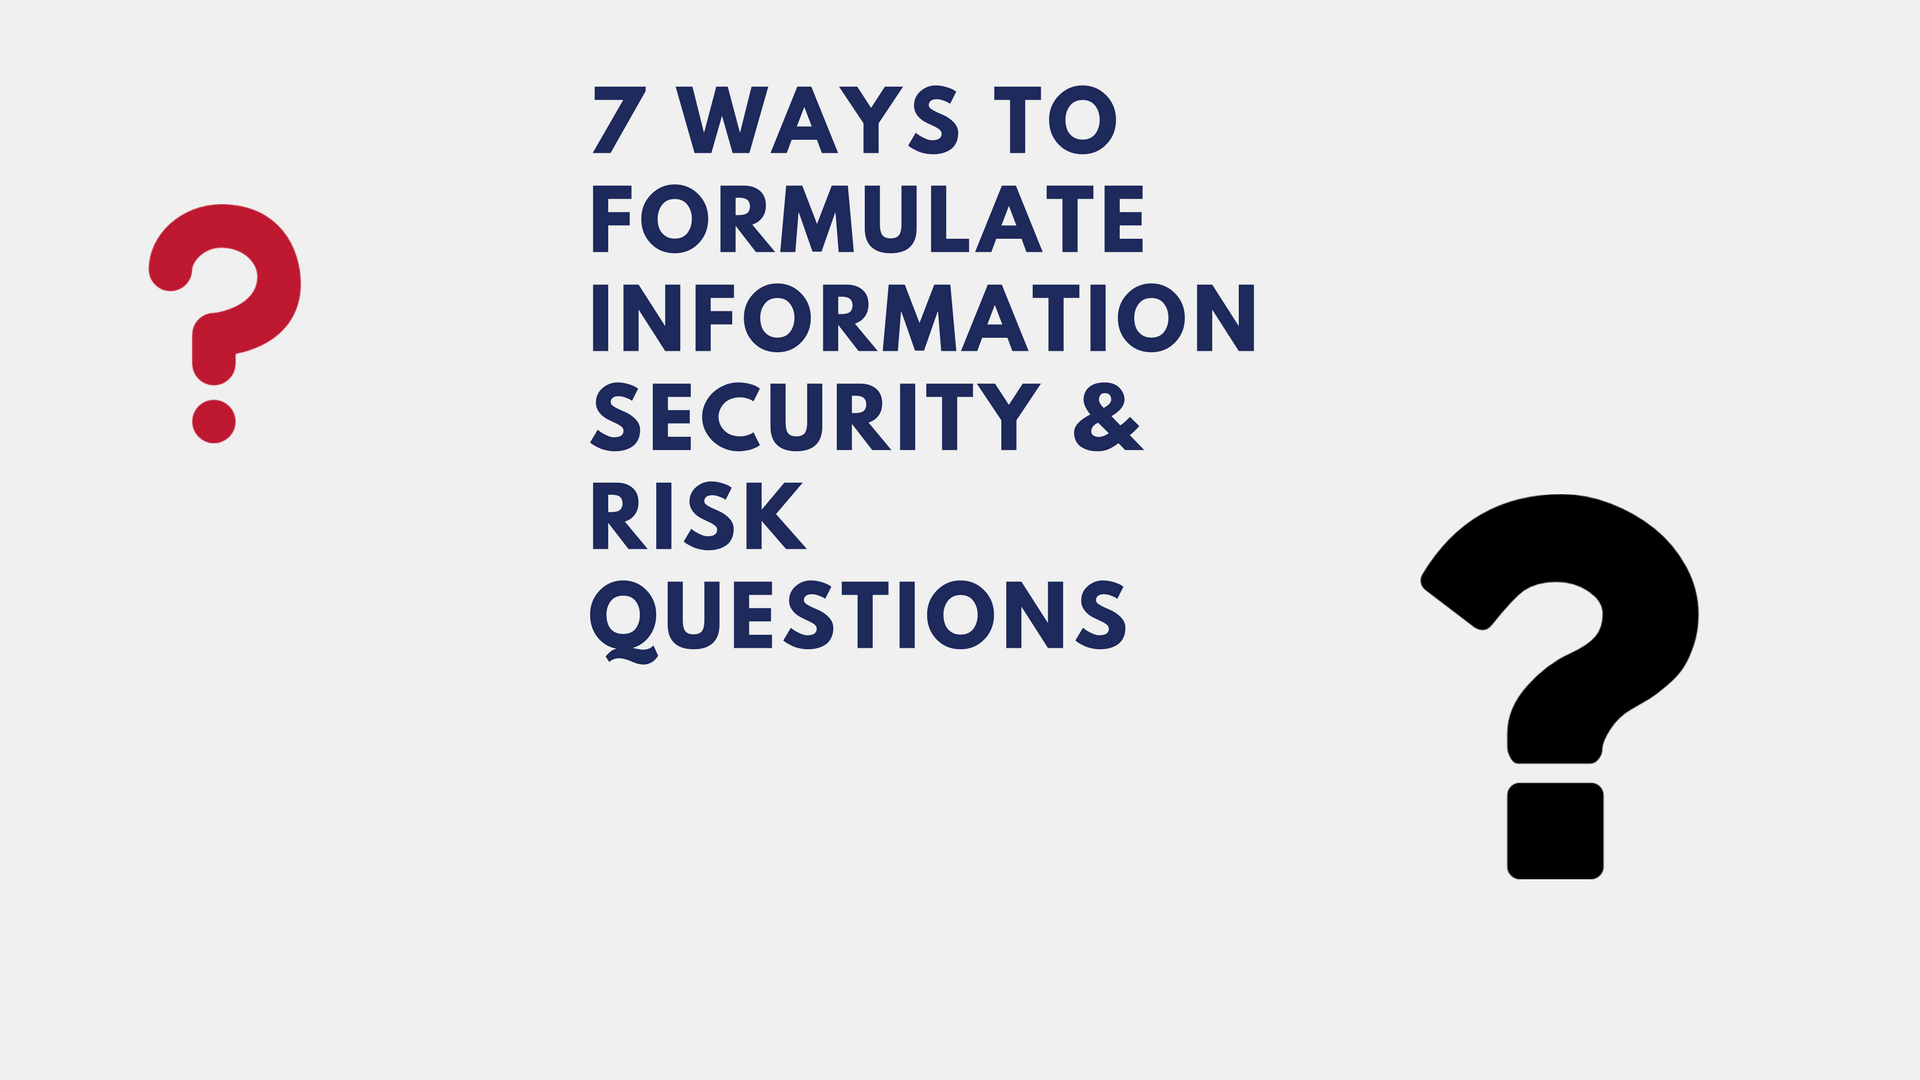 7 Ways to Formulate Information Security & Risk Questions [INFOGRAPHICS]